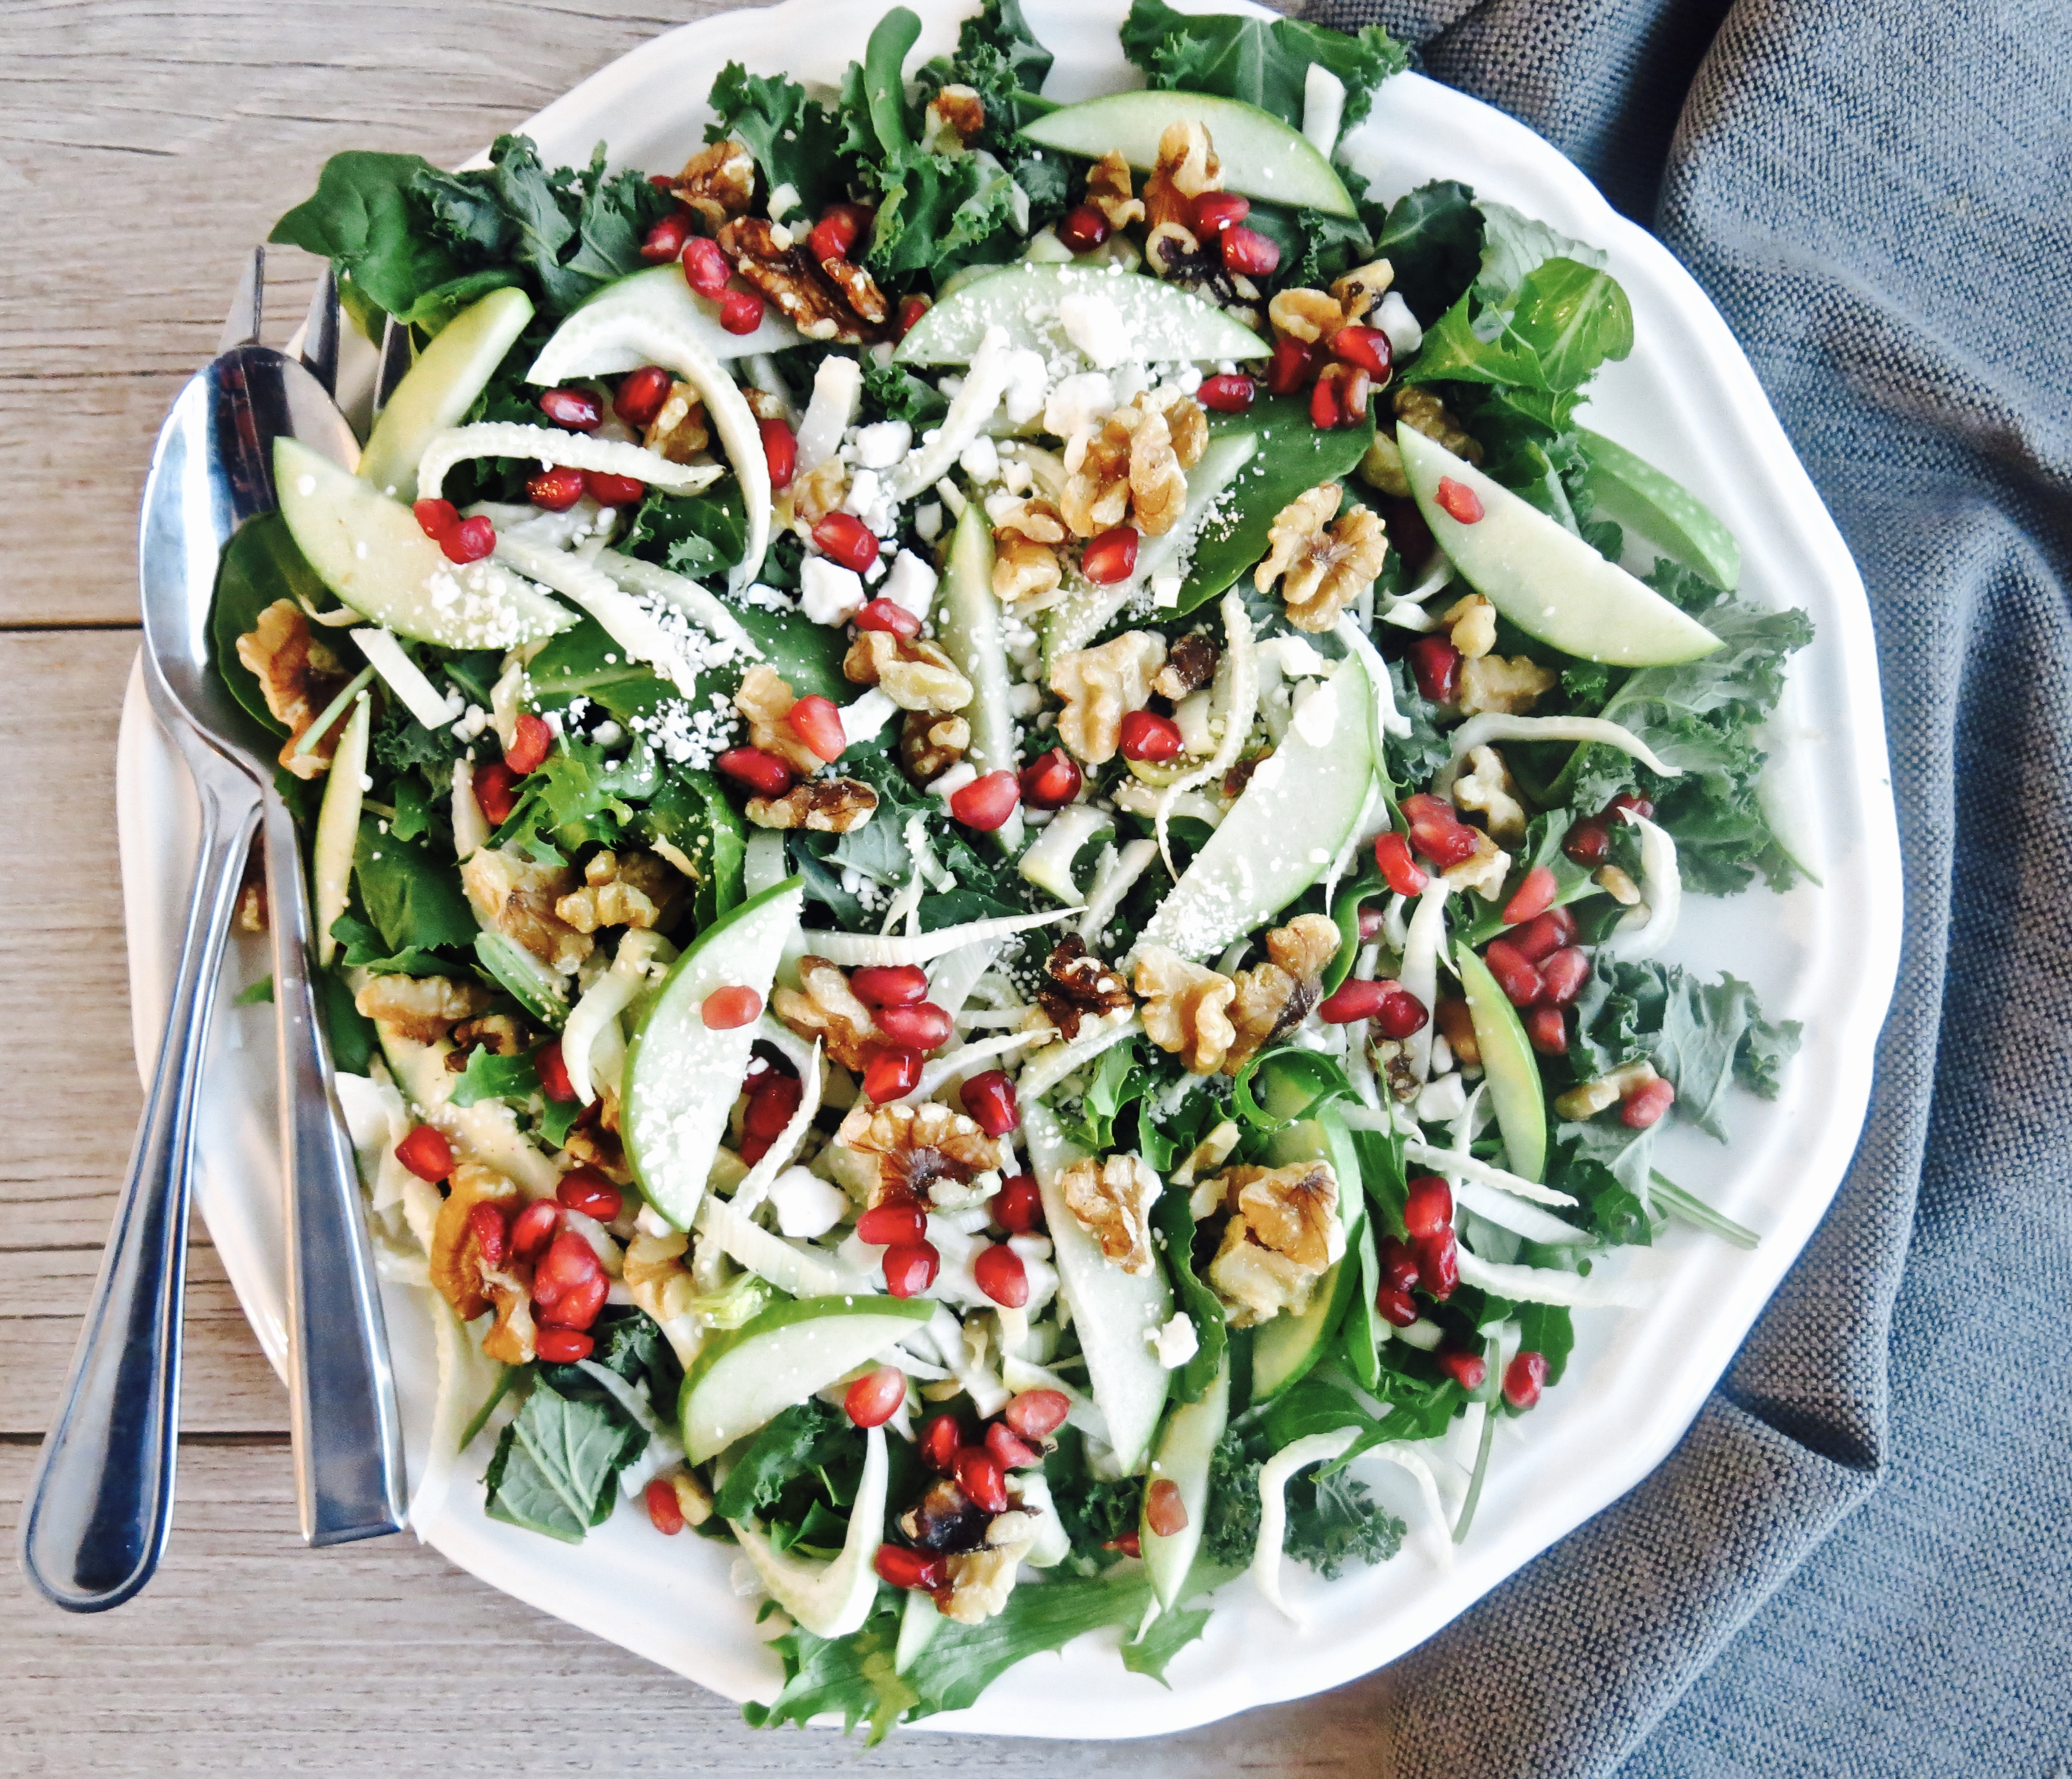 Baby Kale, Spinach Fennel and Apple Fall Salad with a Mustard Vinaigrette